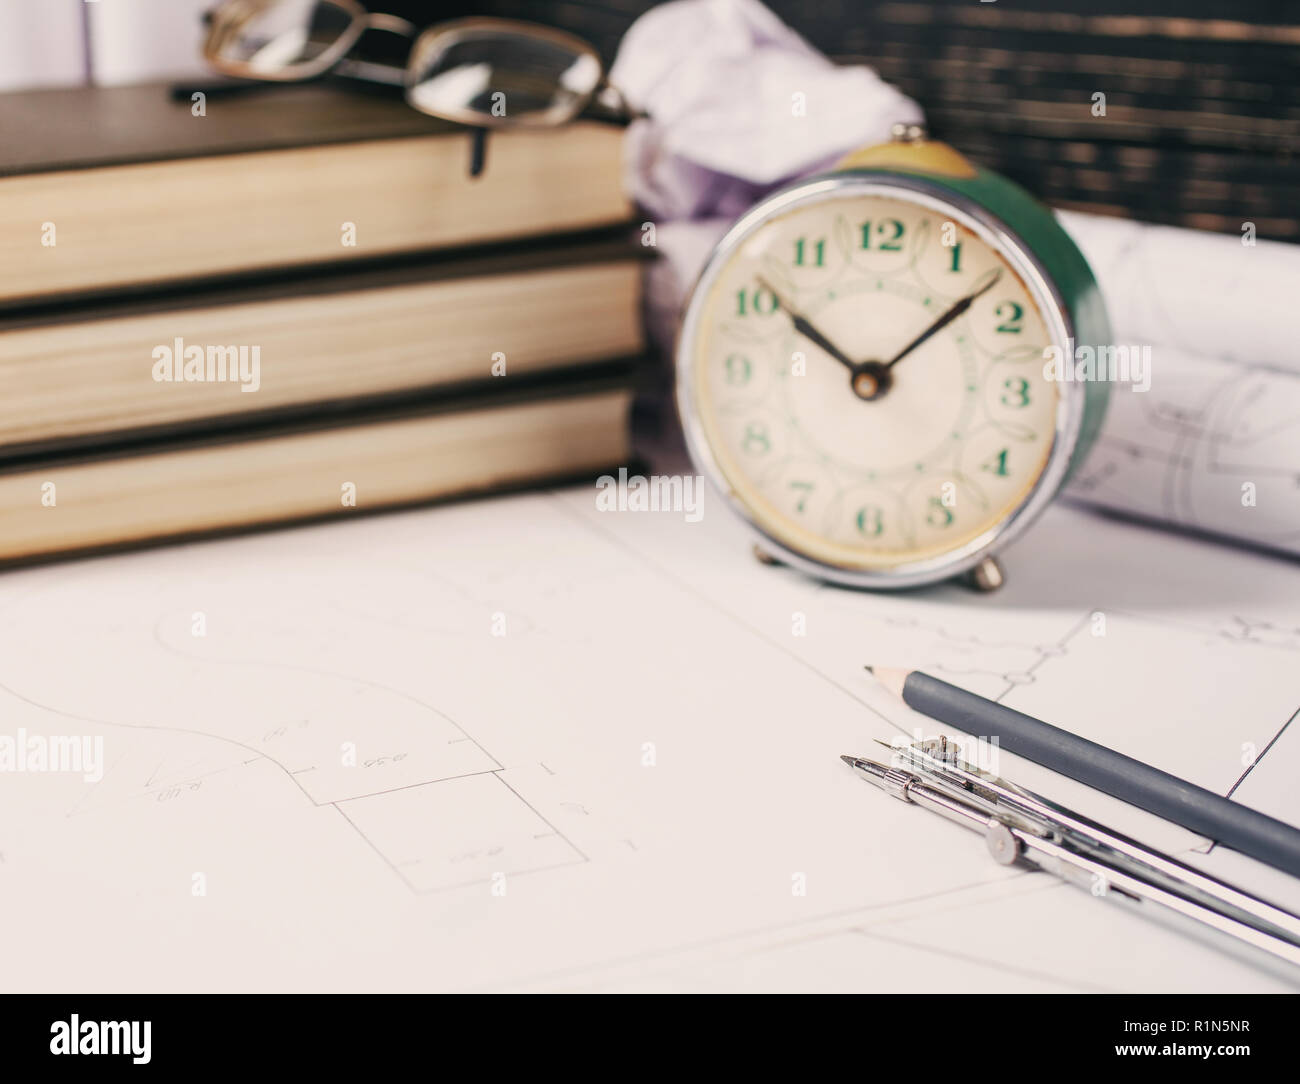 Rolls with drawings, design books and several drawing tools - Stock Image